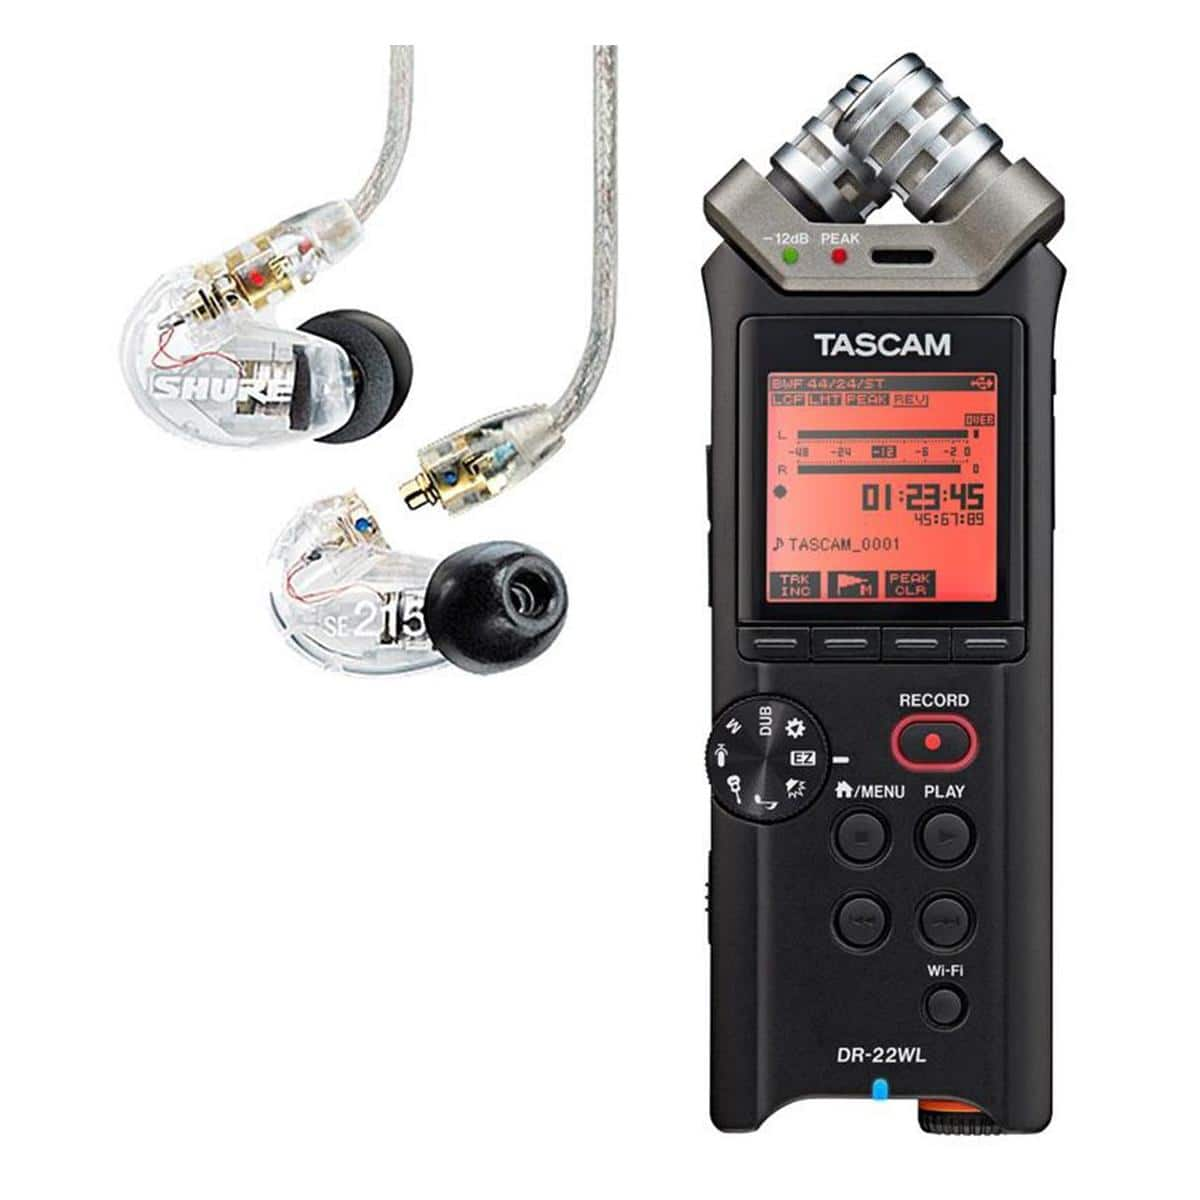 Shure SE215 Earphones + Tascam DR-22WL 2-Ch Audio Recorder $140 + Free Shipping